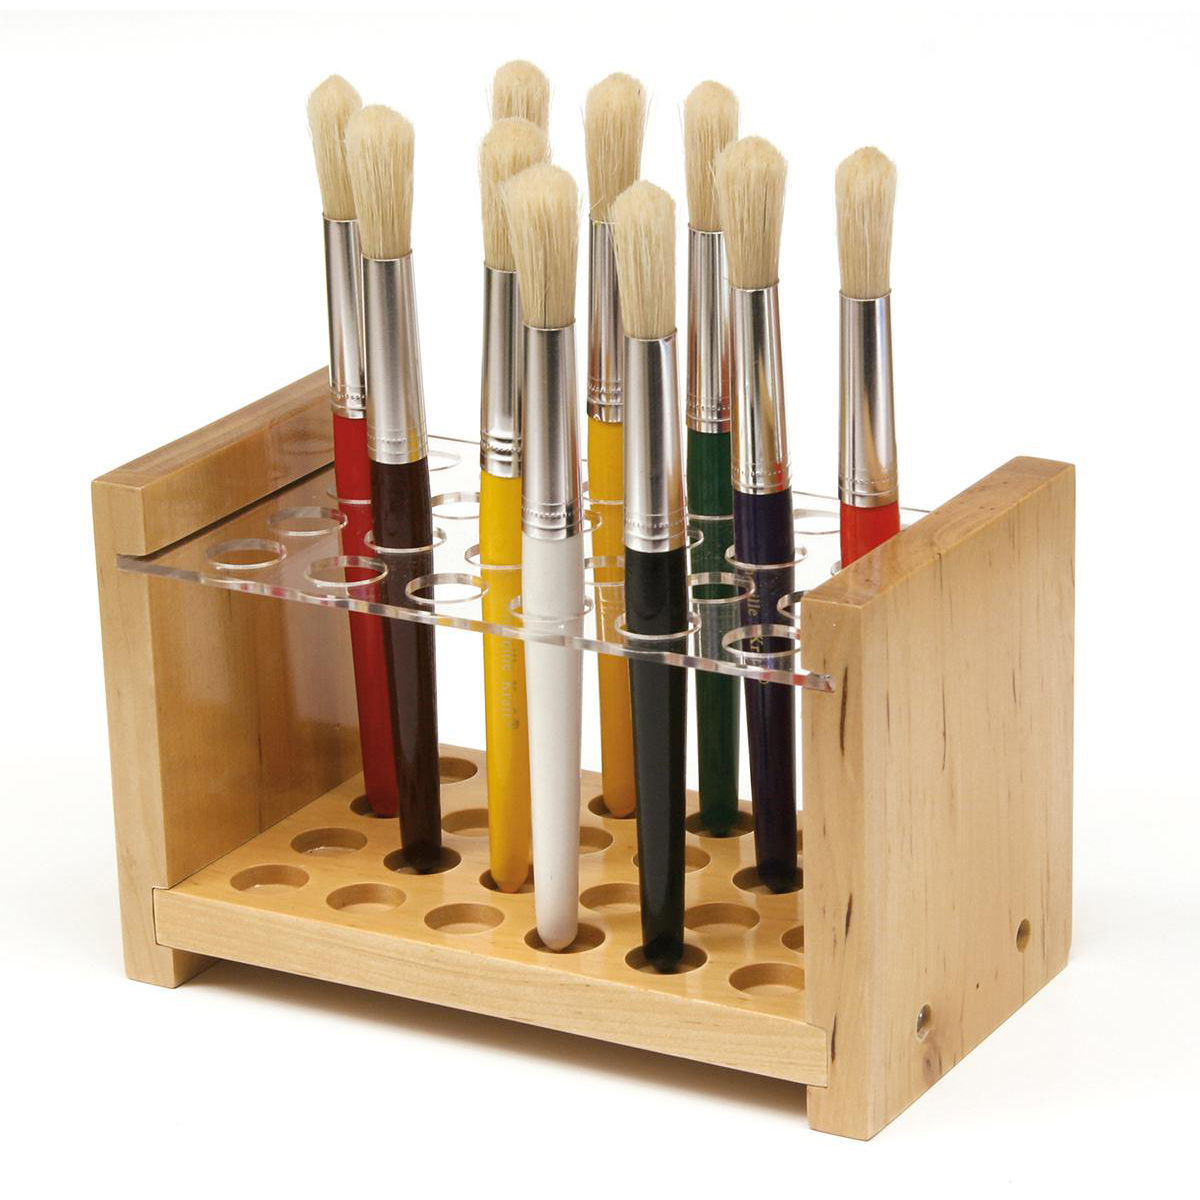 Wooden Paint Brush Holder